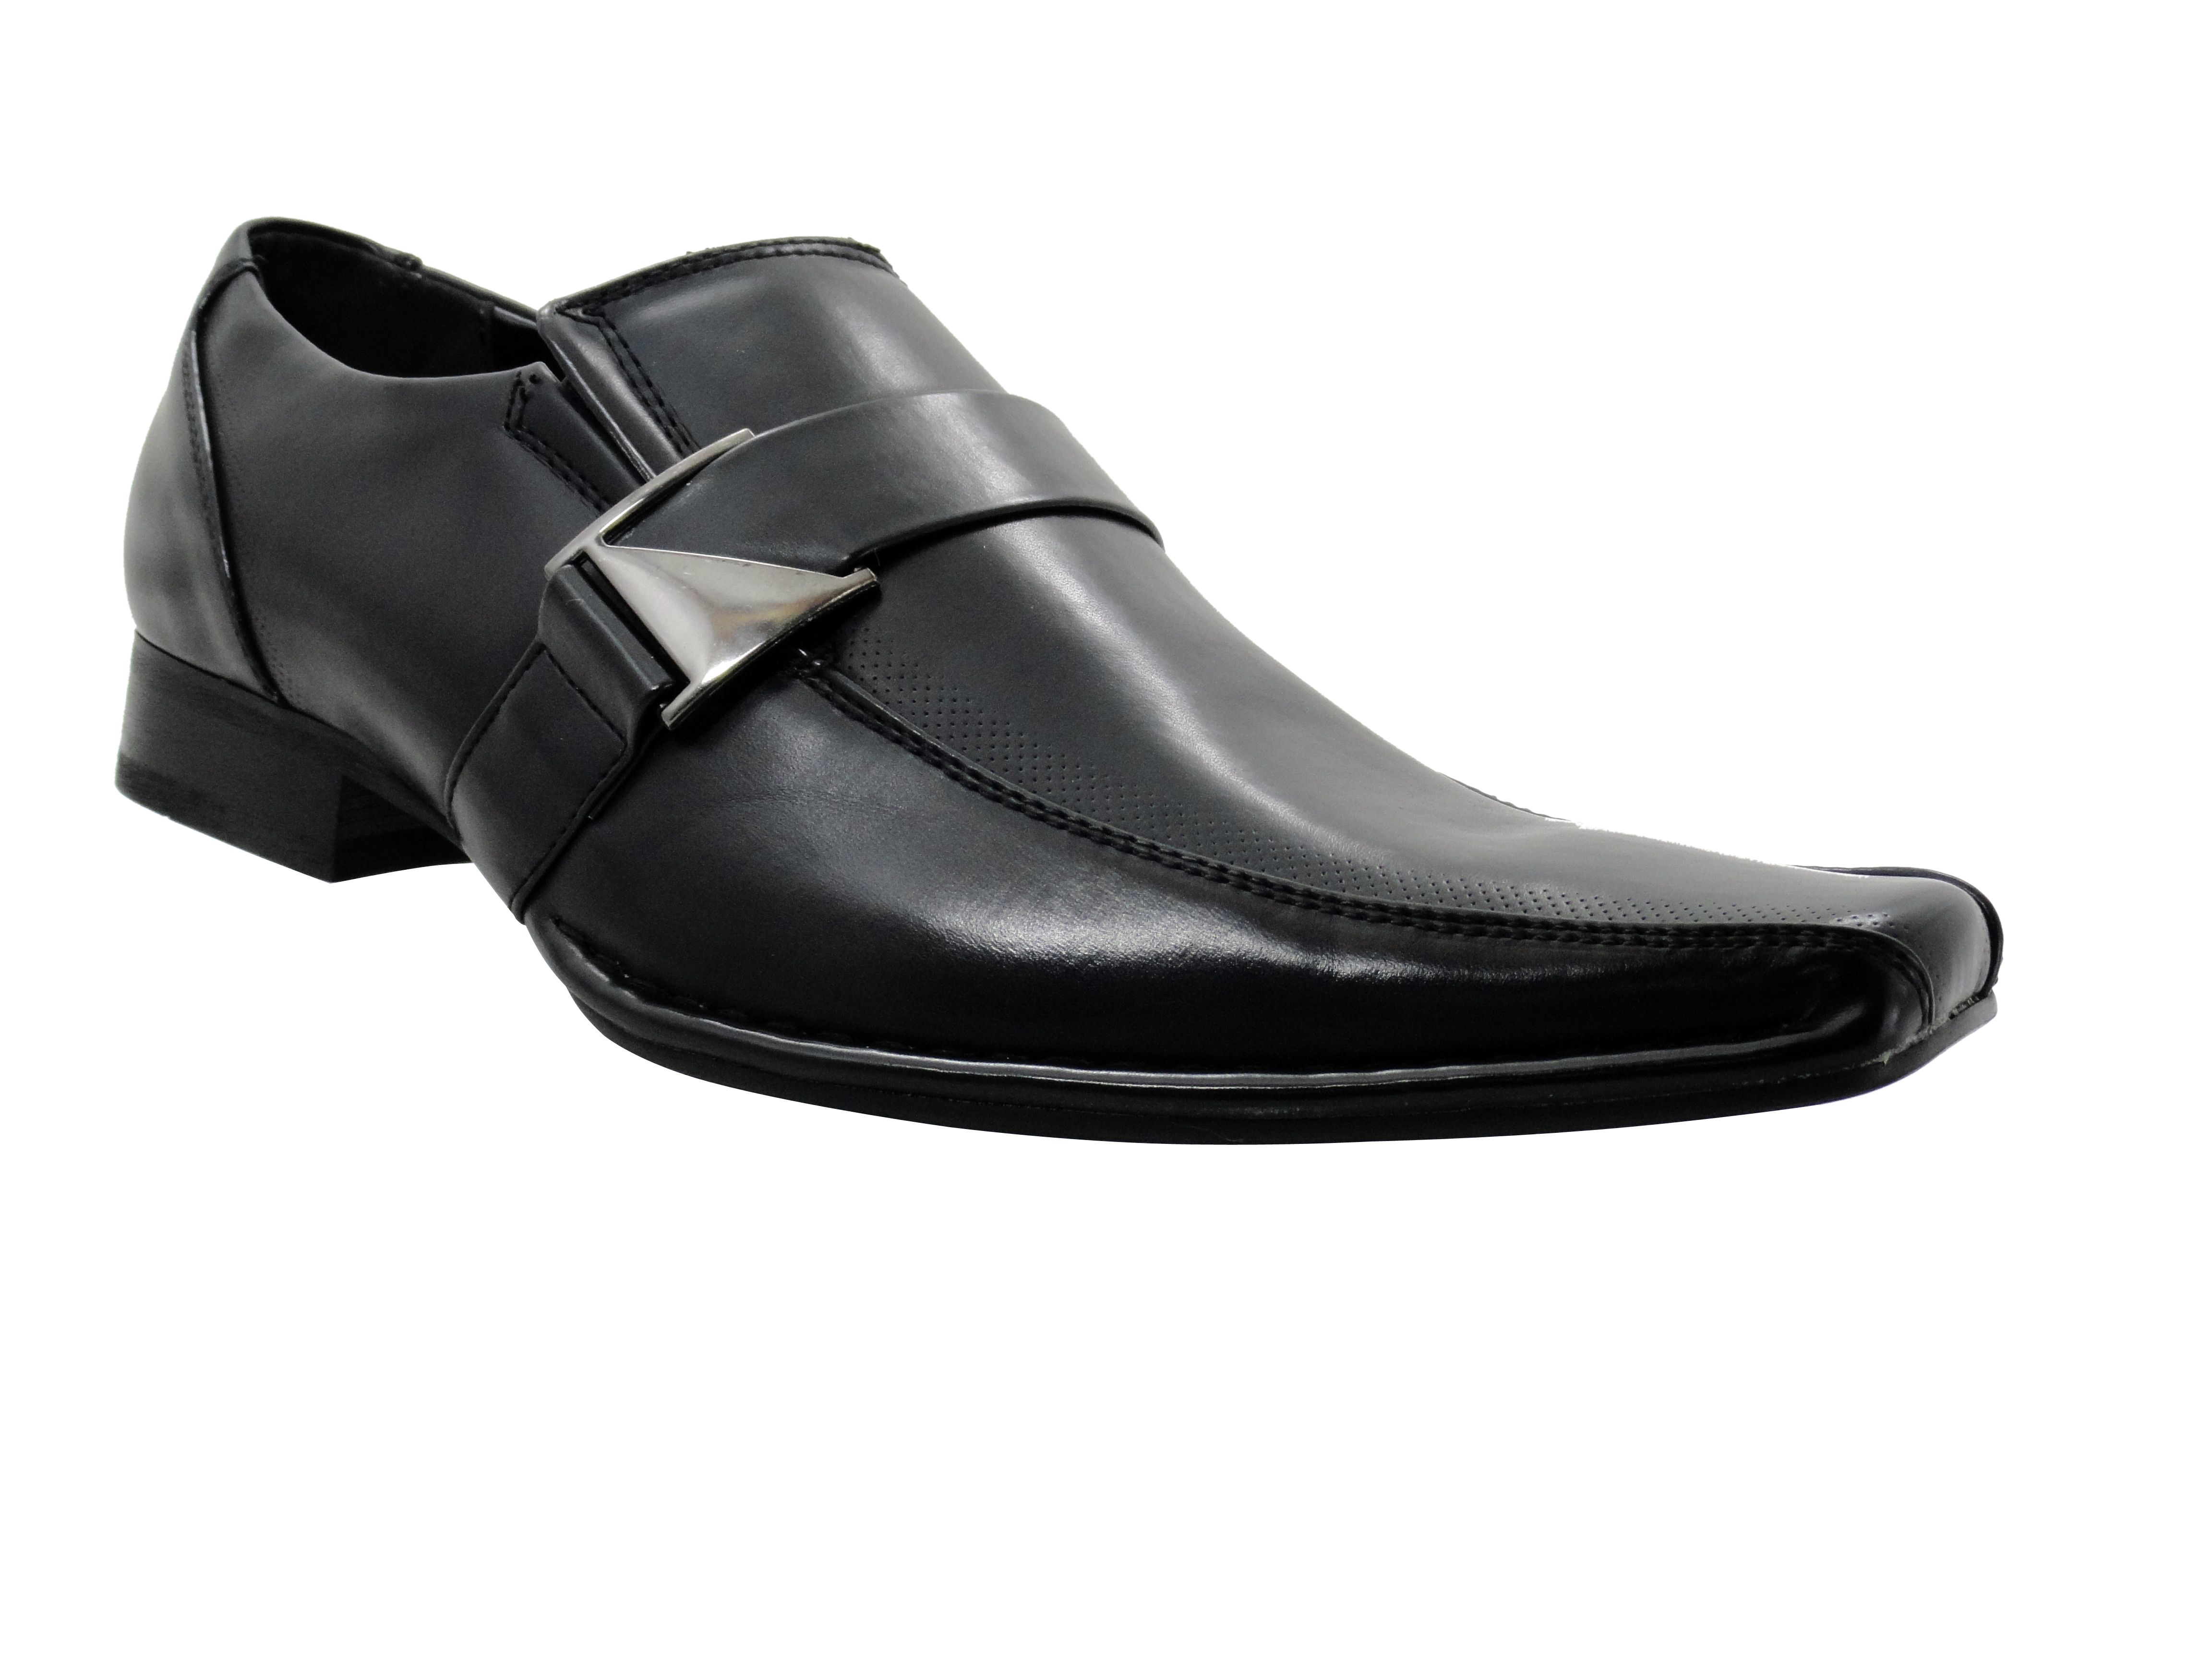 mens dress shoes parrazo slip on loafers black fashion